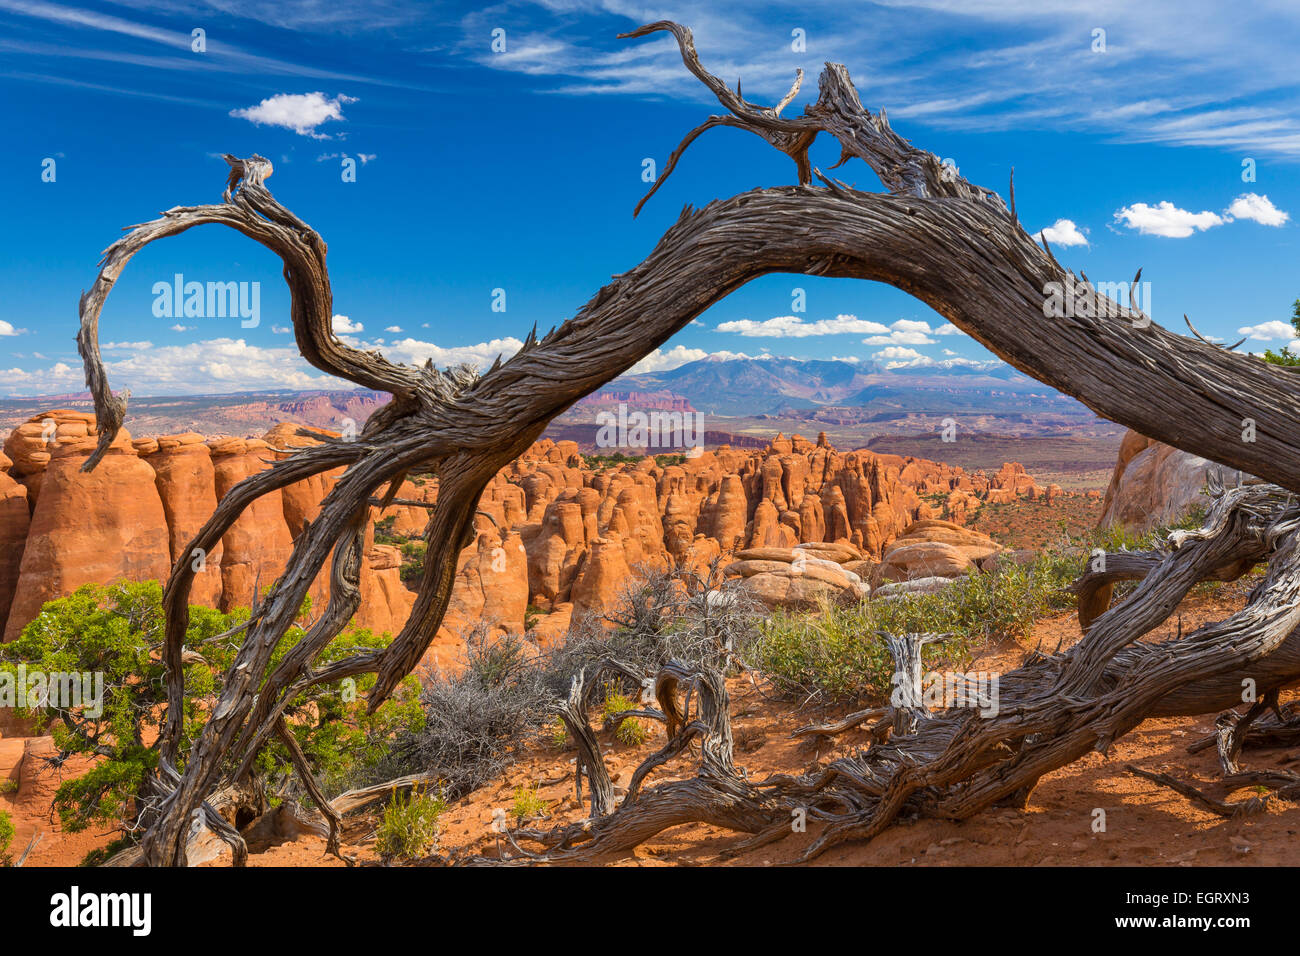 The Fiery Furnace is a collection of narrow sandstone canyons in Arches National Park in Utah, United States. - Stock Image